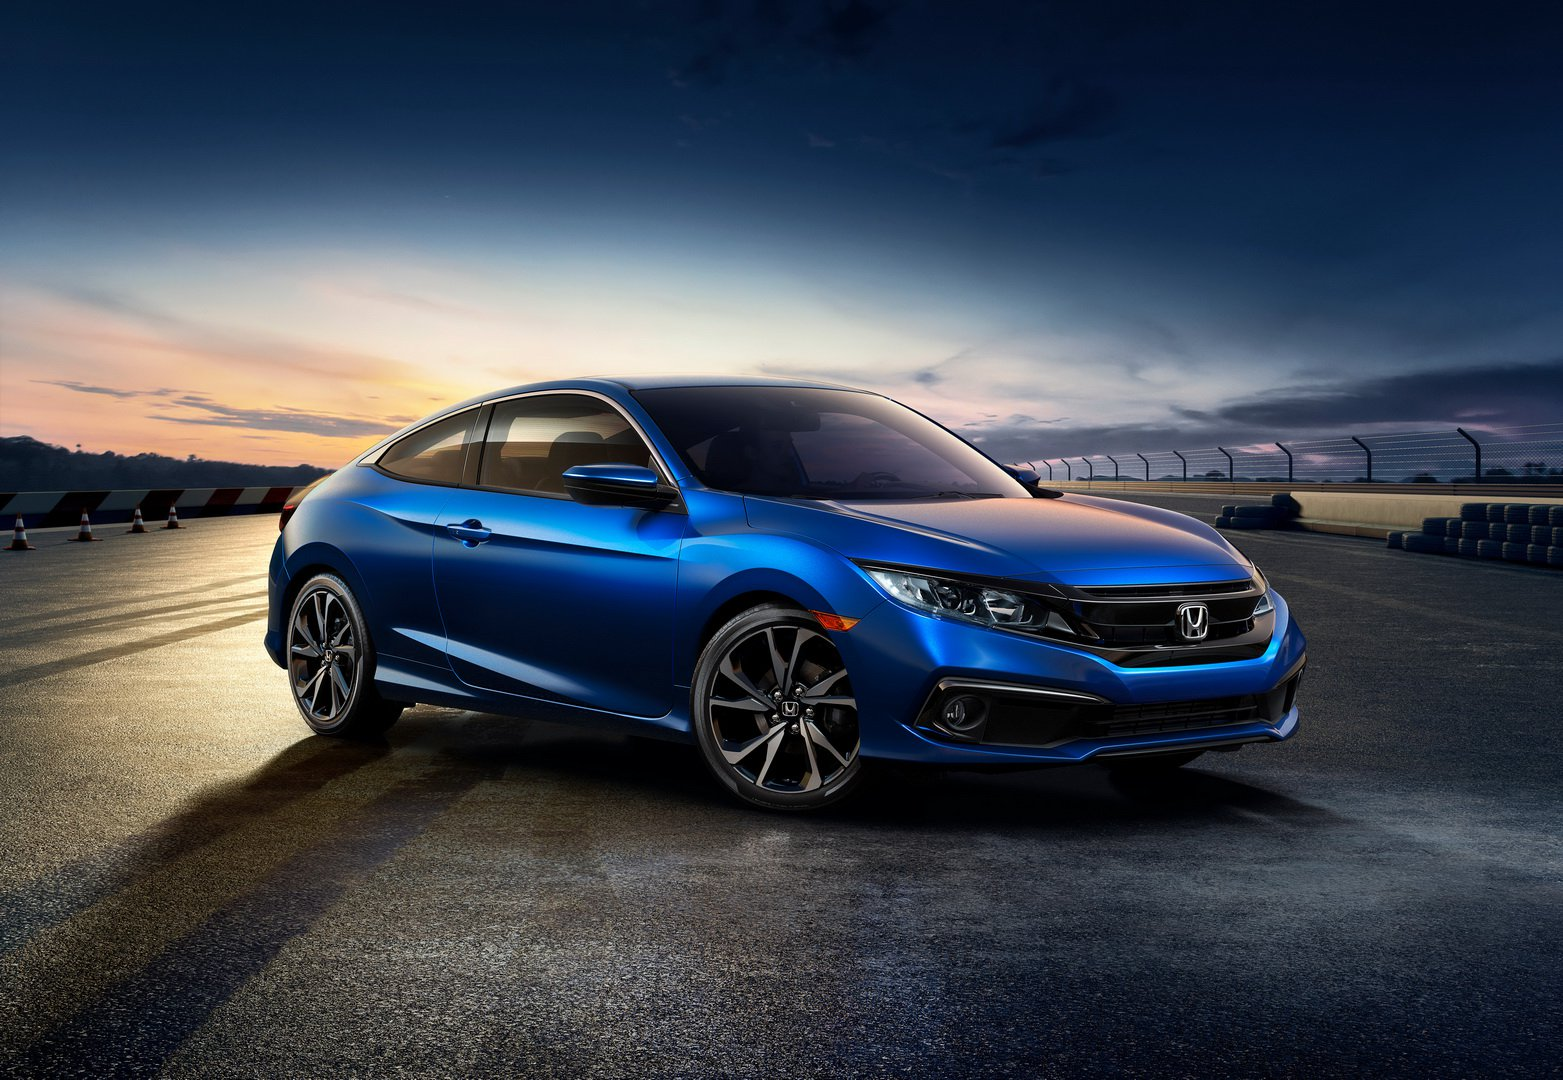 Honda refreshes Civic sedan and coupe, adds 'Sport' trim